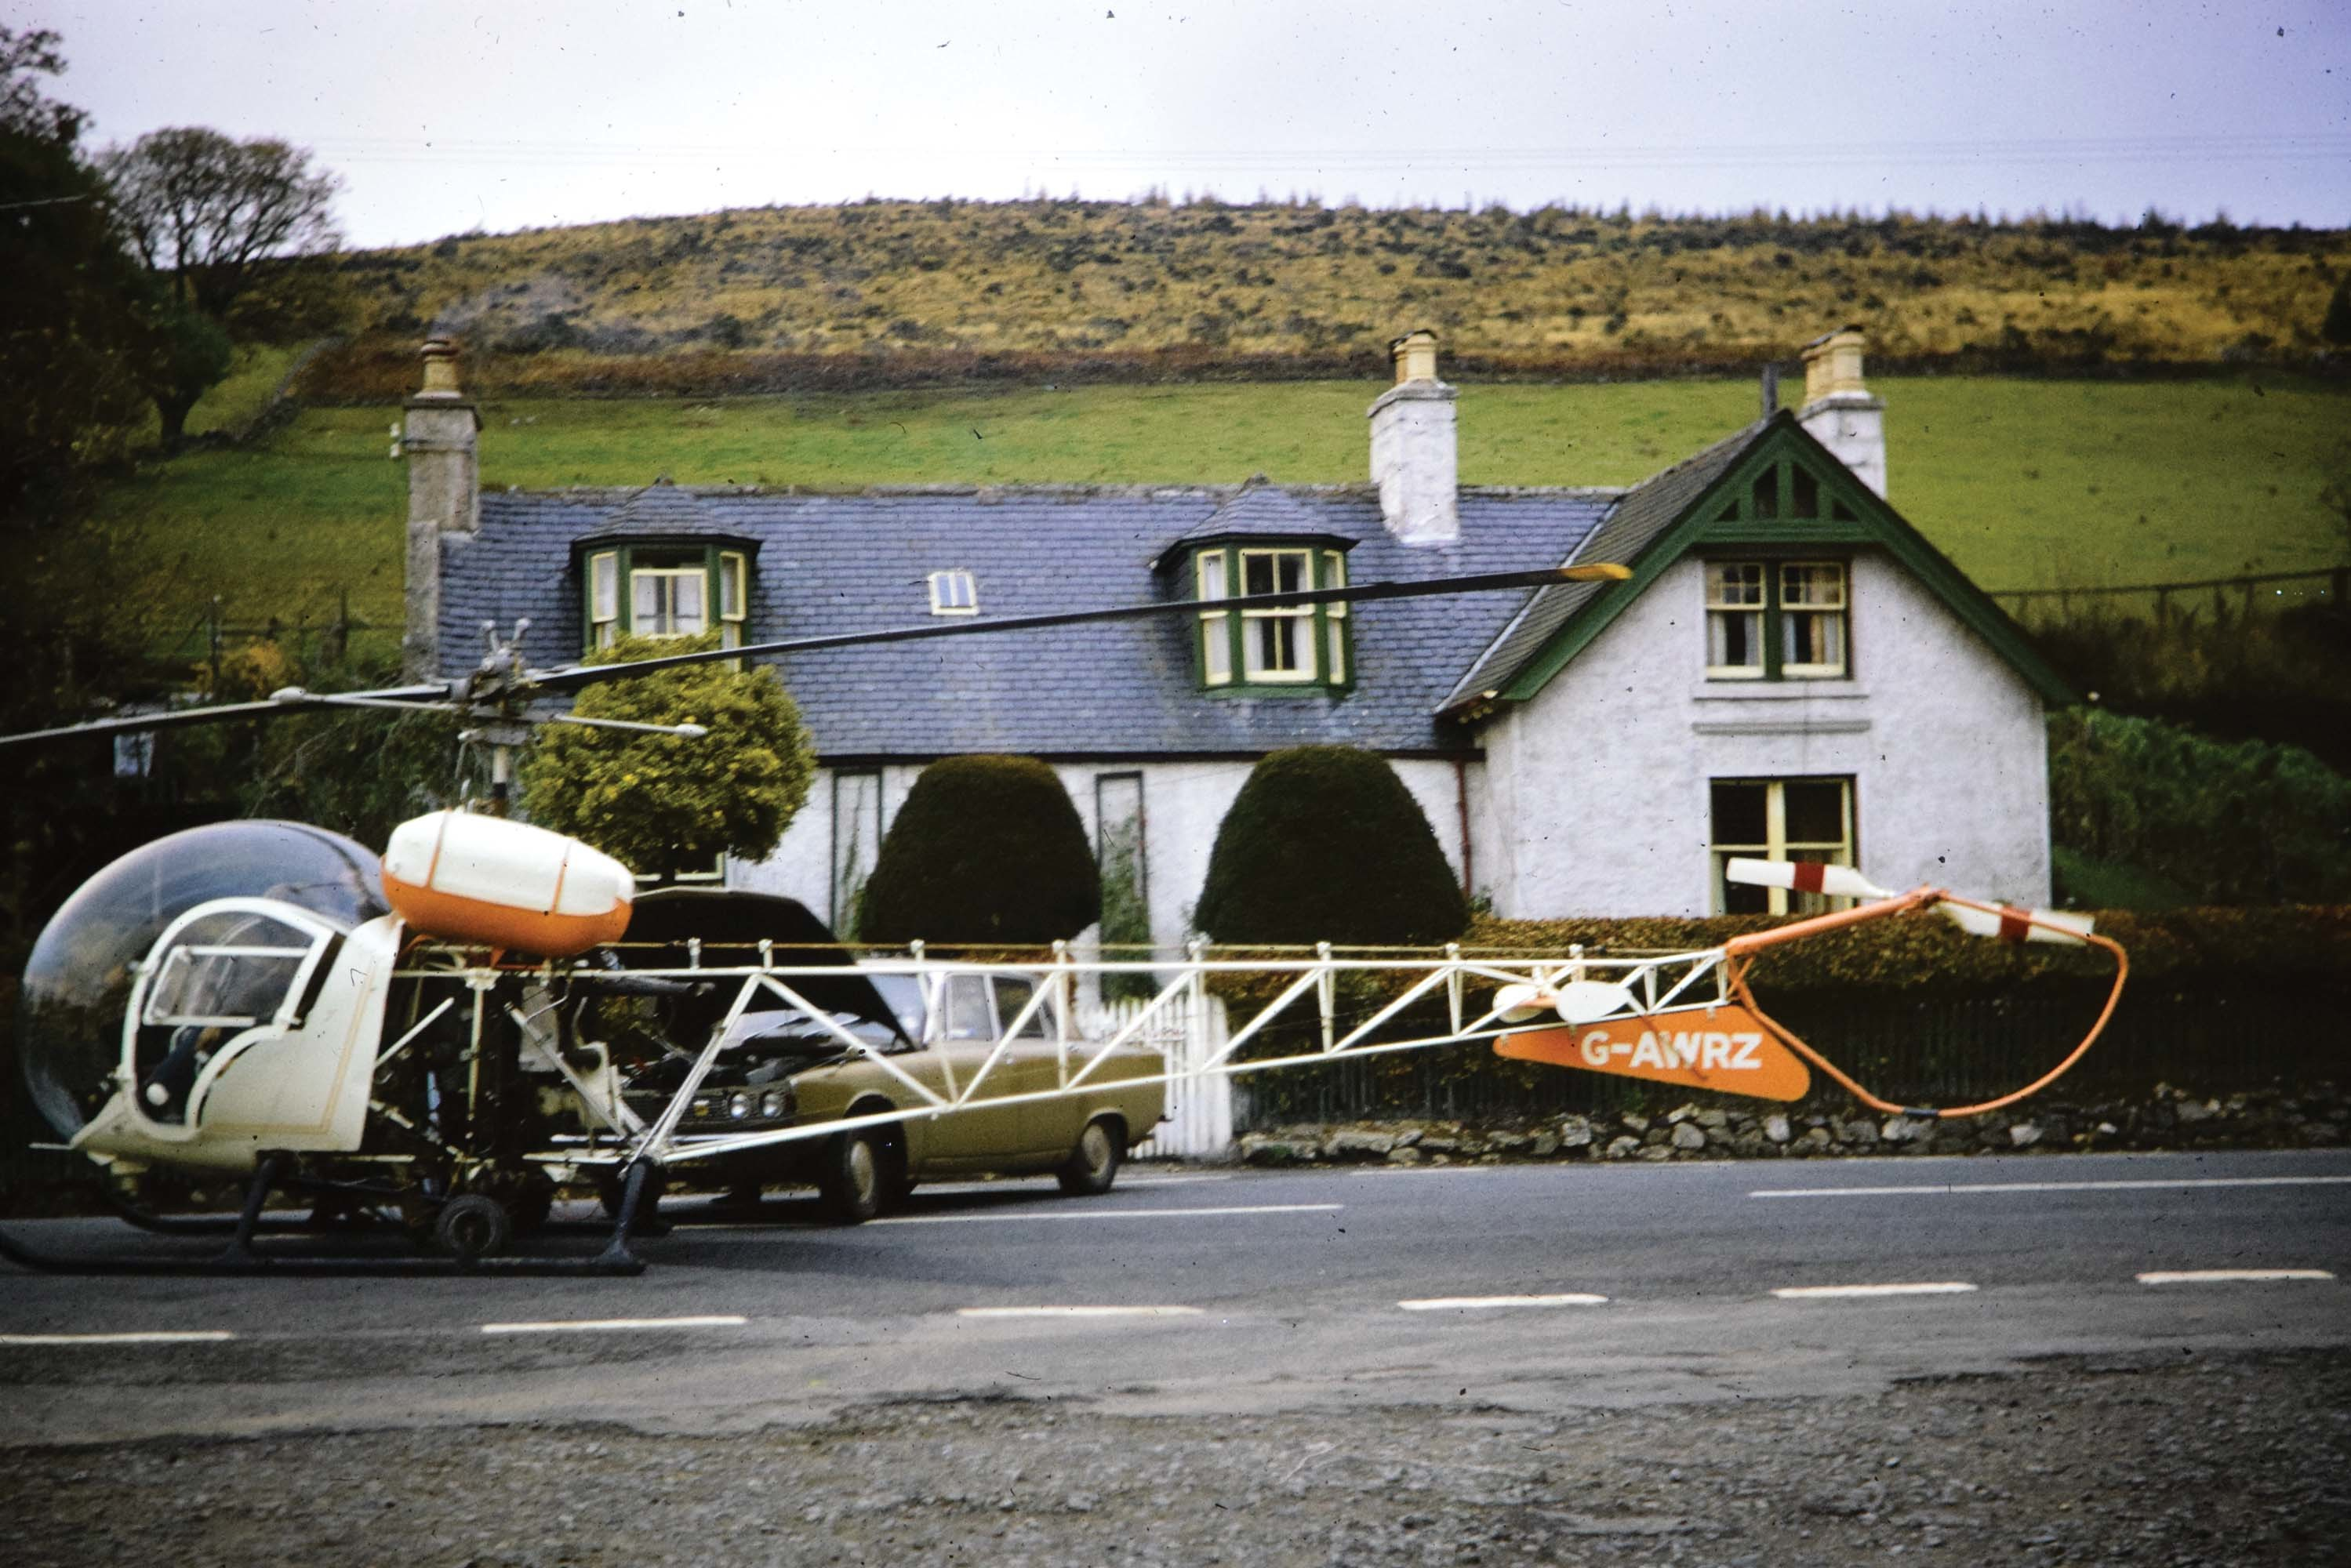 The Lonach Highland and Friendly Society are trying to trace the story behind this 40-year-old photograph of the helicopter.